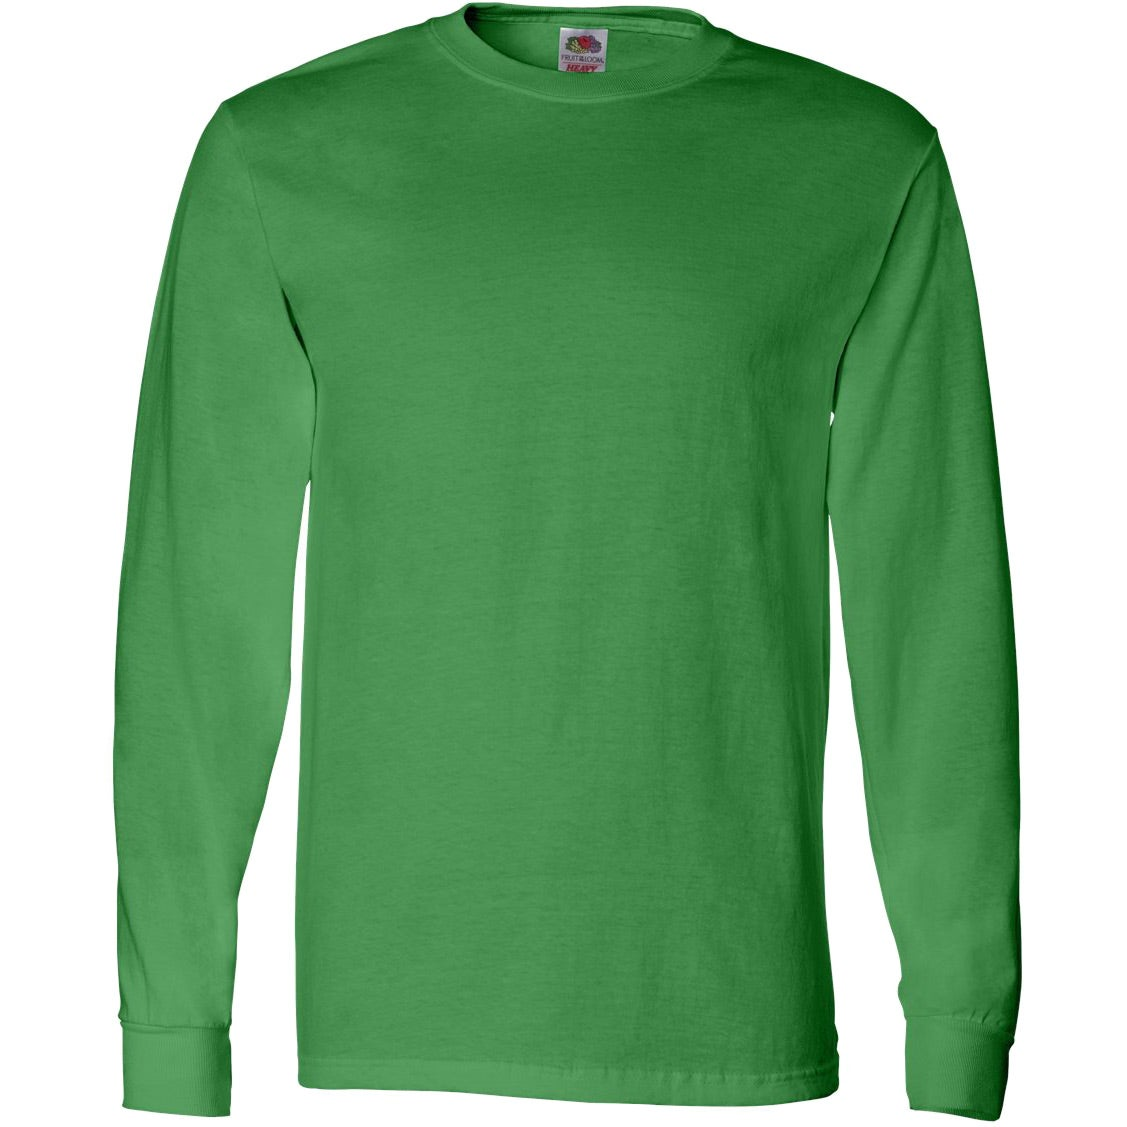 Logo fruit of the loom long sleeve cotton t shirt for Fruit of the loom custom t shirts